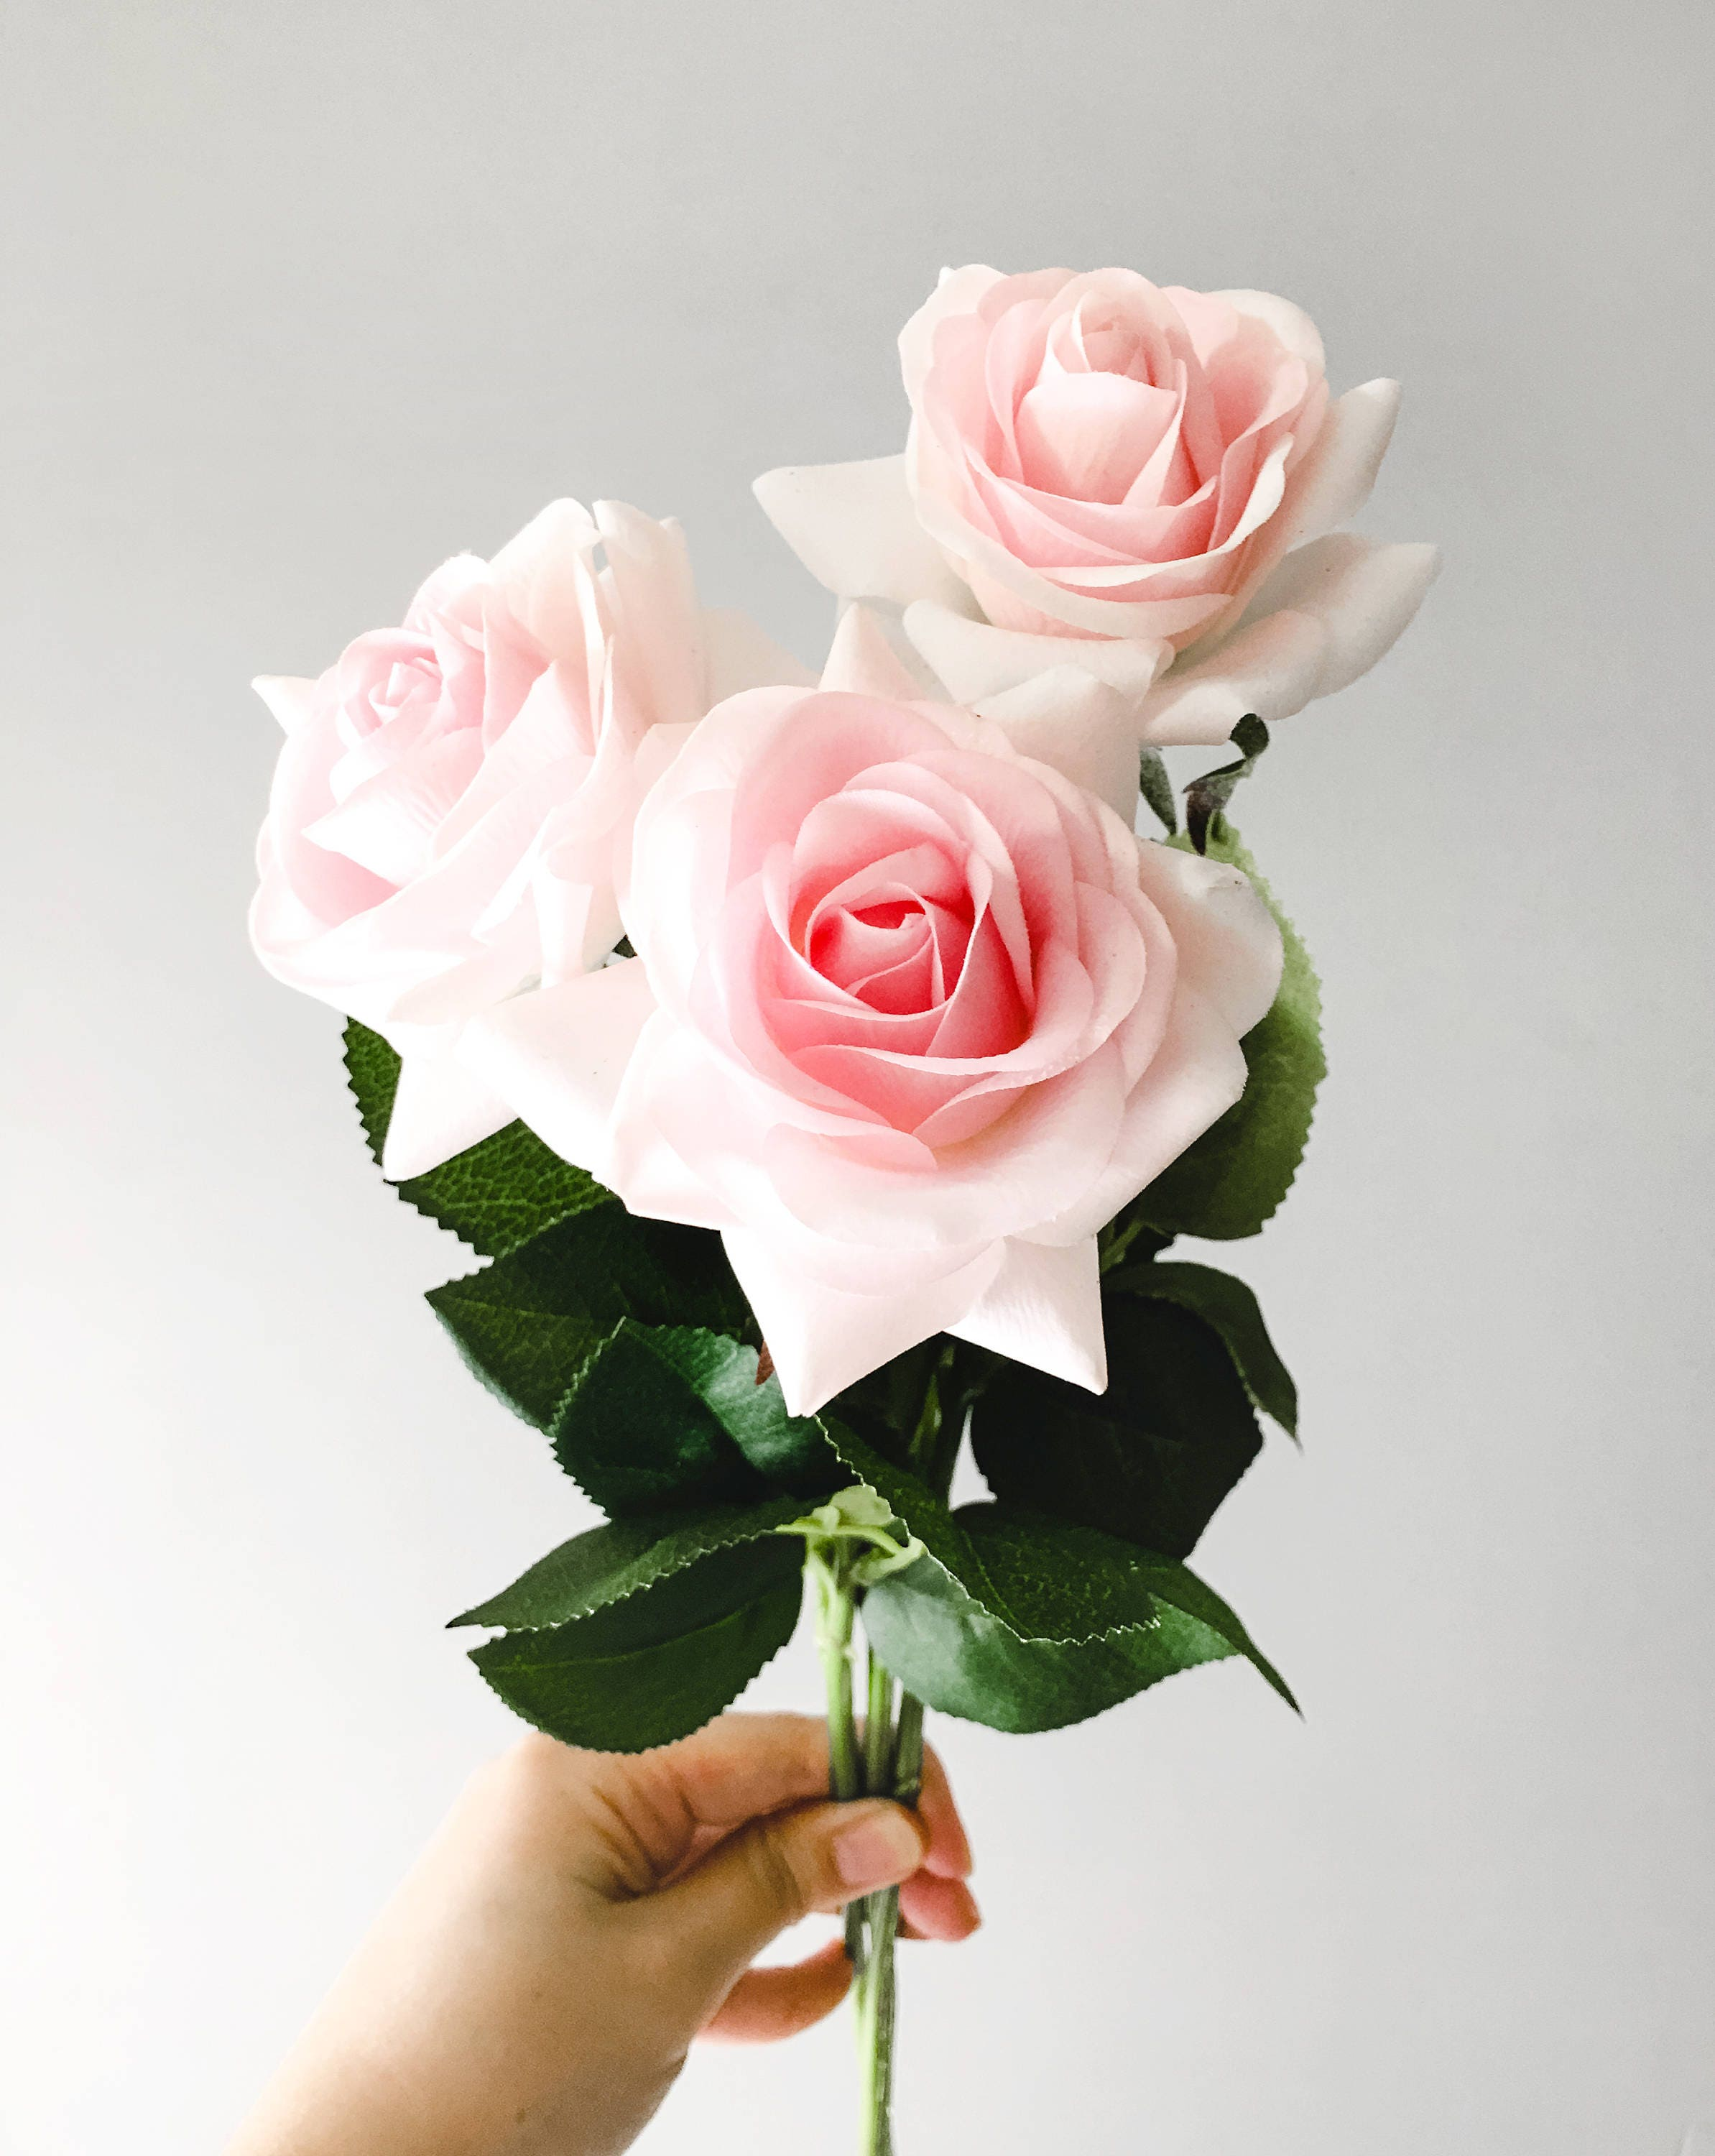 Real touch blush pink roses silk flower silk flowers for diy wedding real touch blush pink roses silk flower silk flowers for diy wedding bridal bouquet boutonniere corsage mightylinksfo